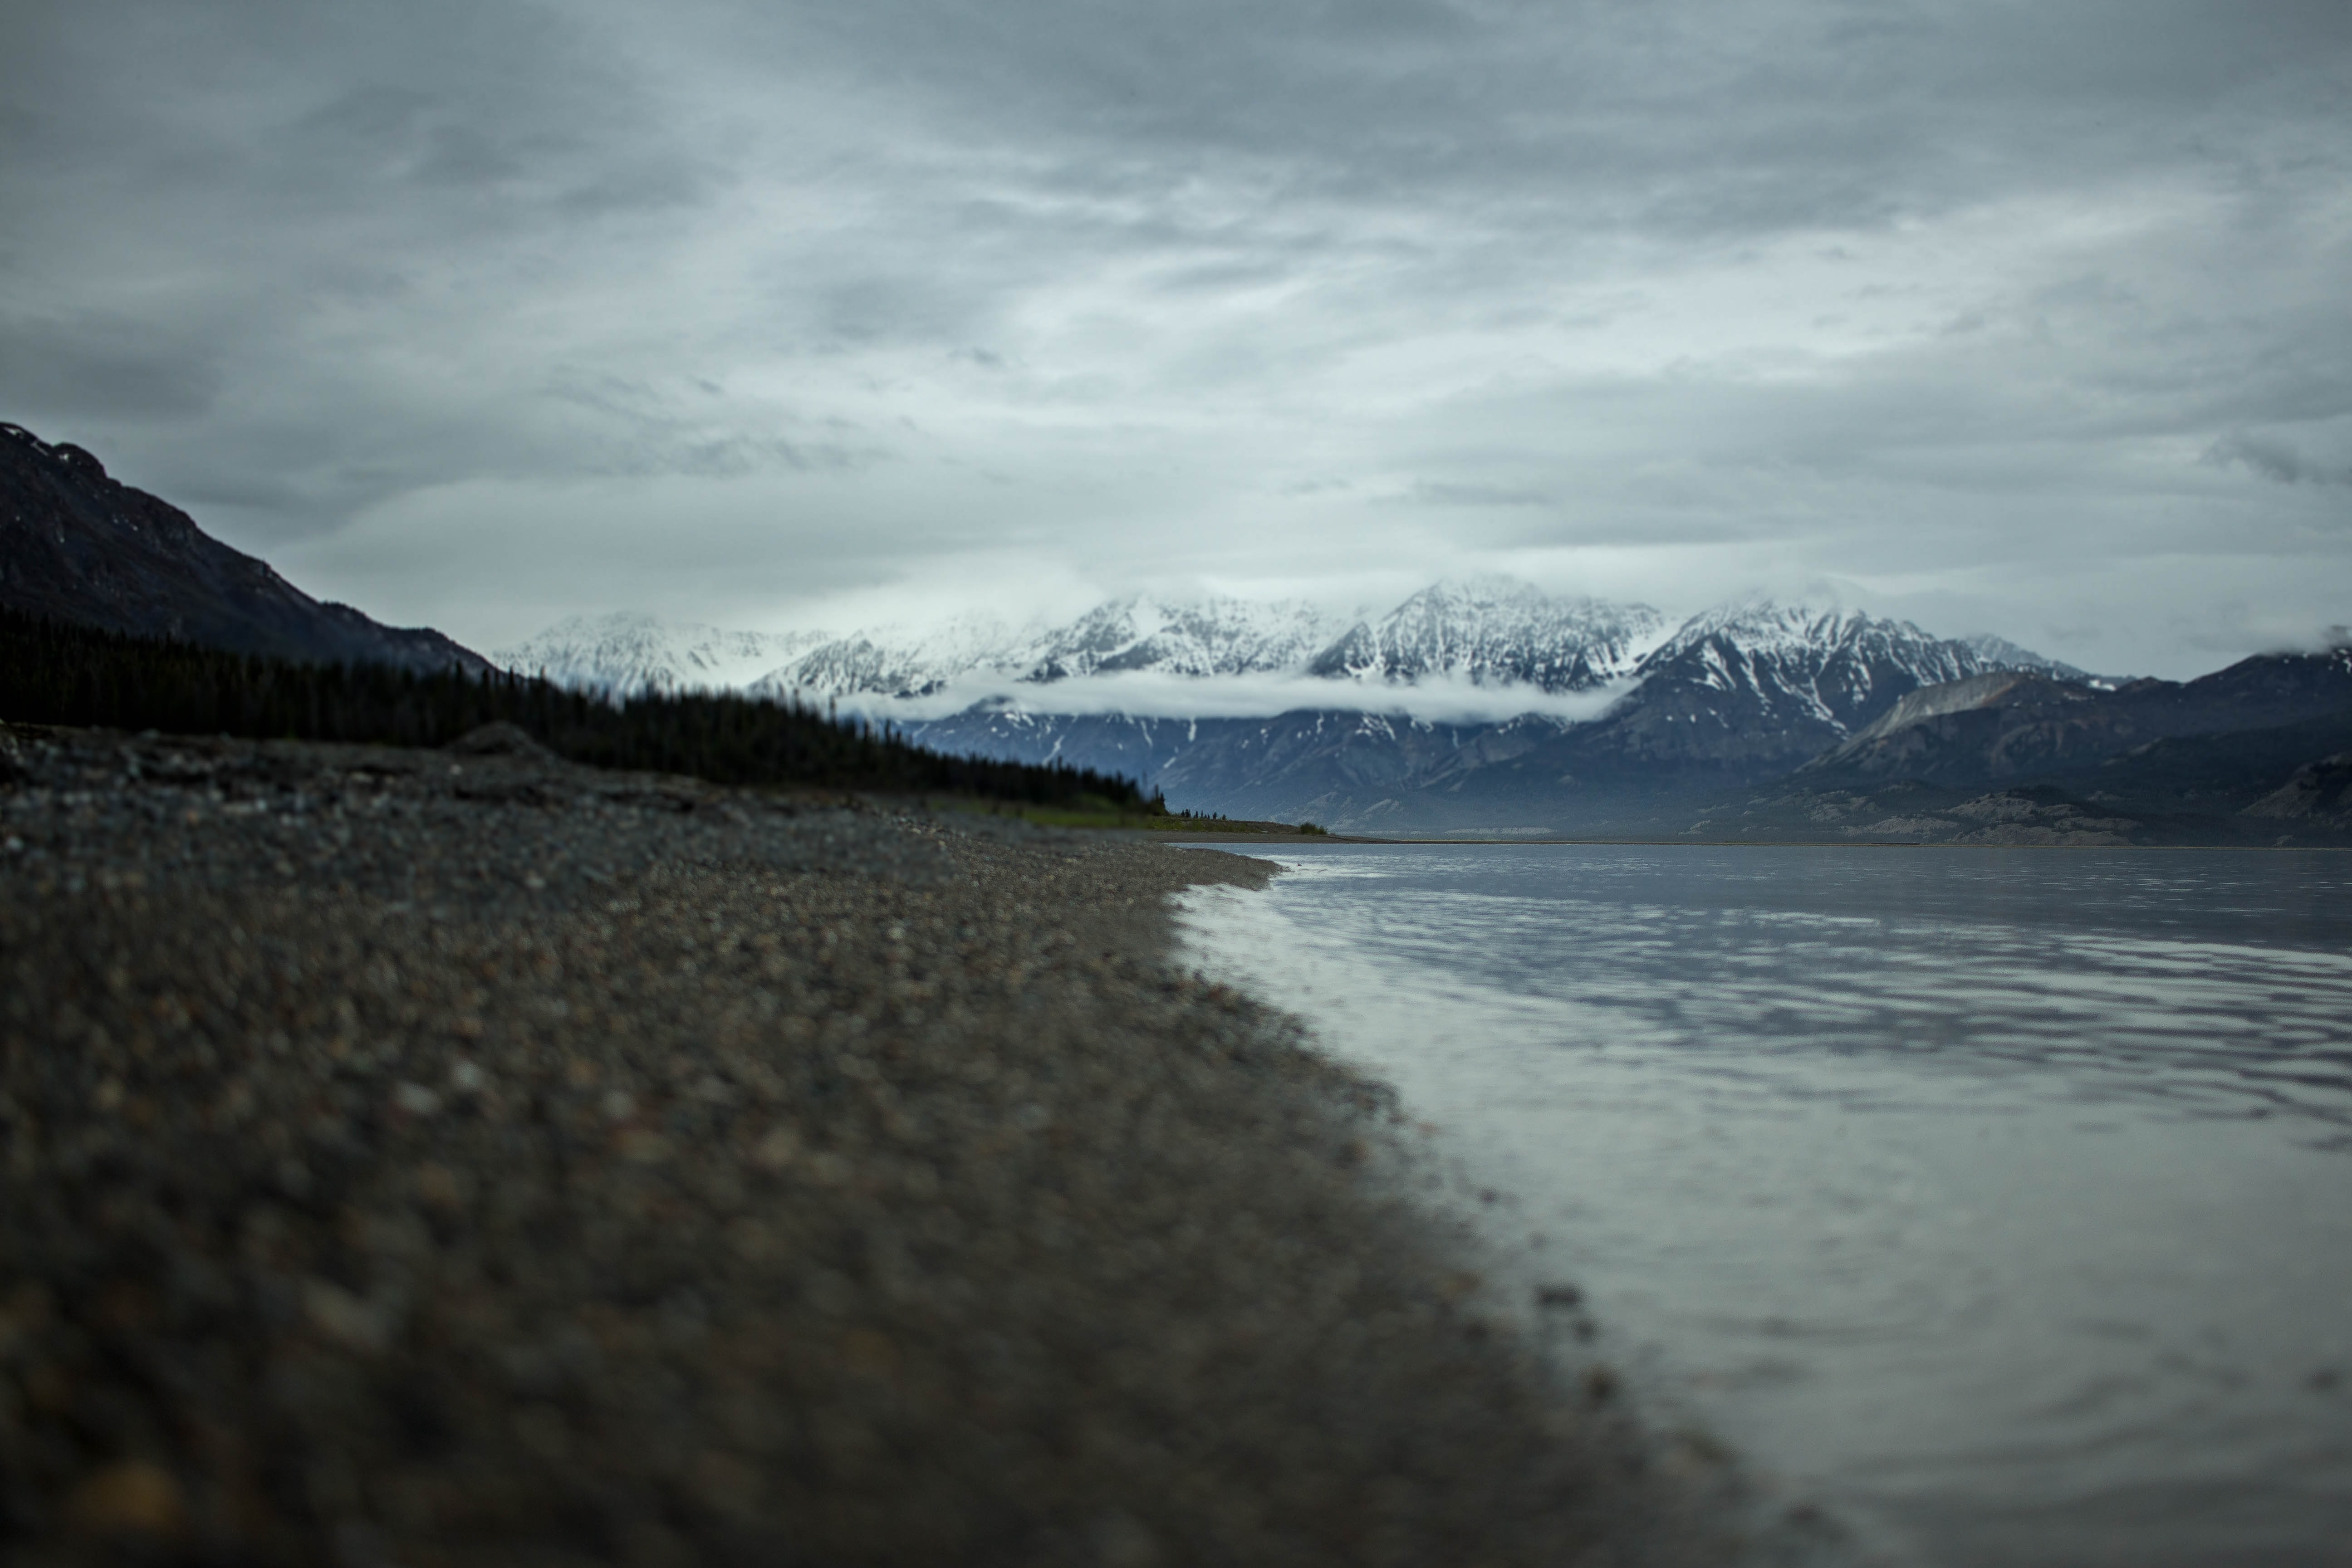 A rocky beach by a lake at Yukon with snowy mountains in the distance